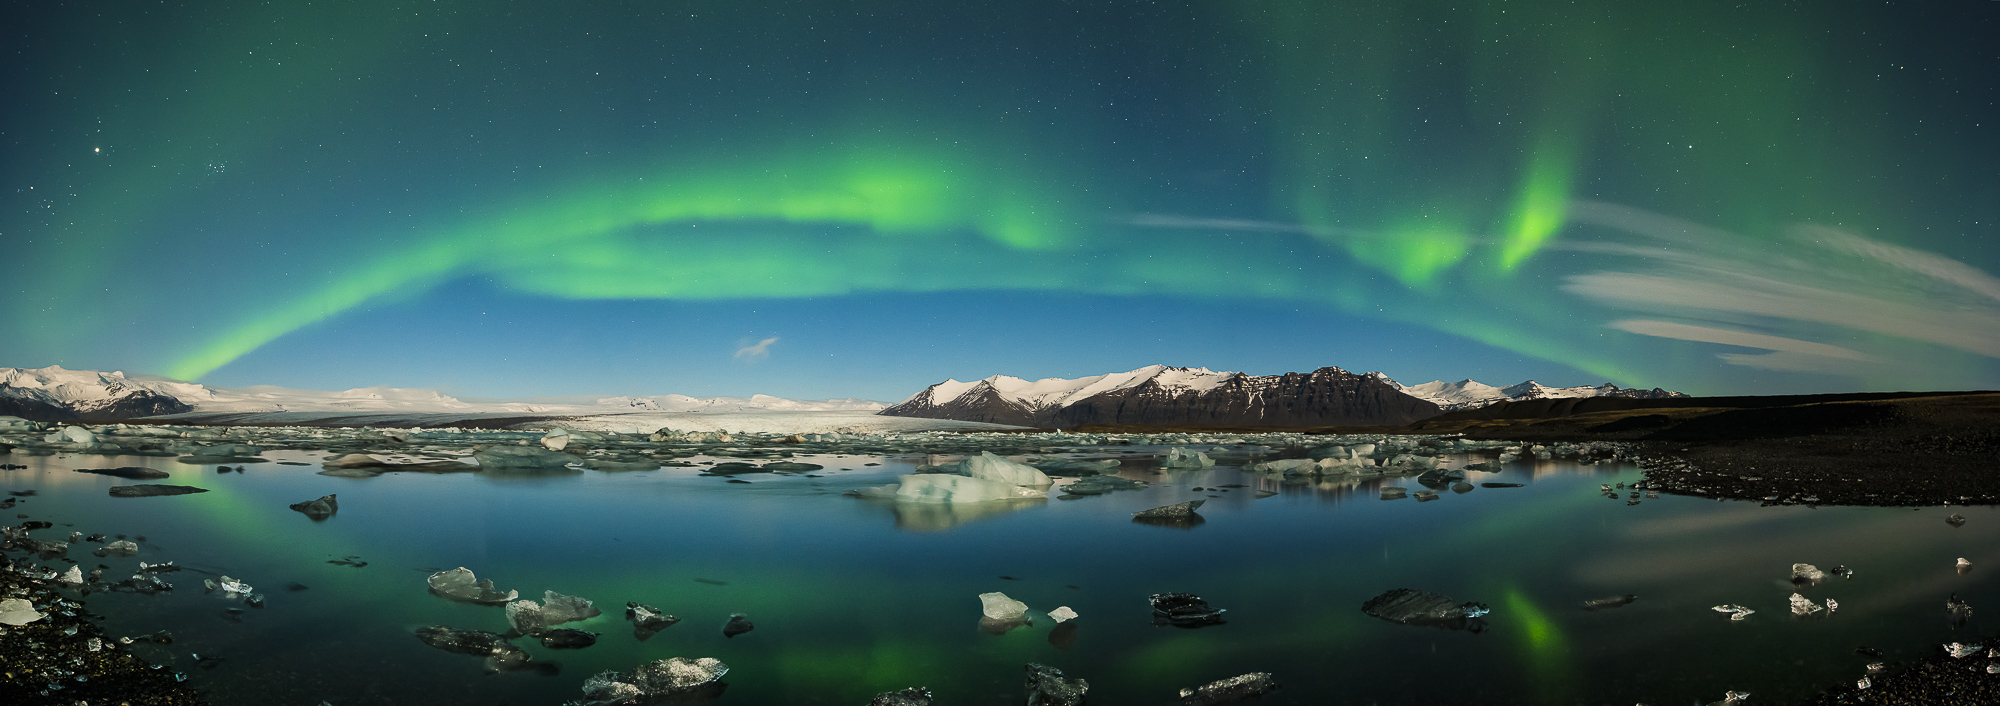 Northern Lights over Jokulsarlon Iceberg Lagoon, Iceland